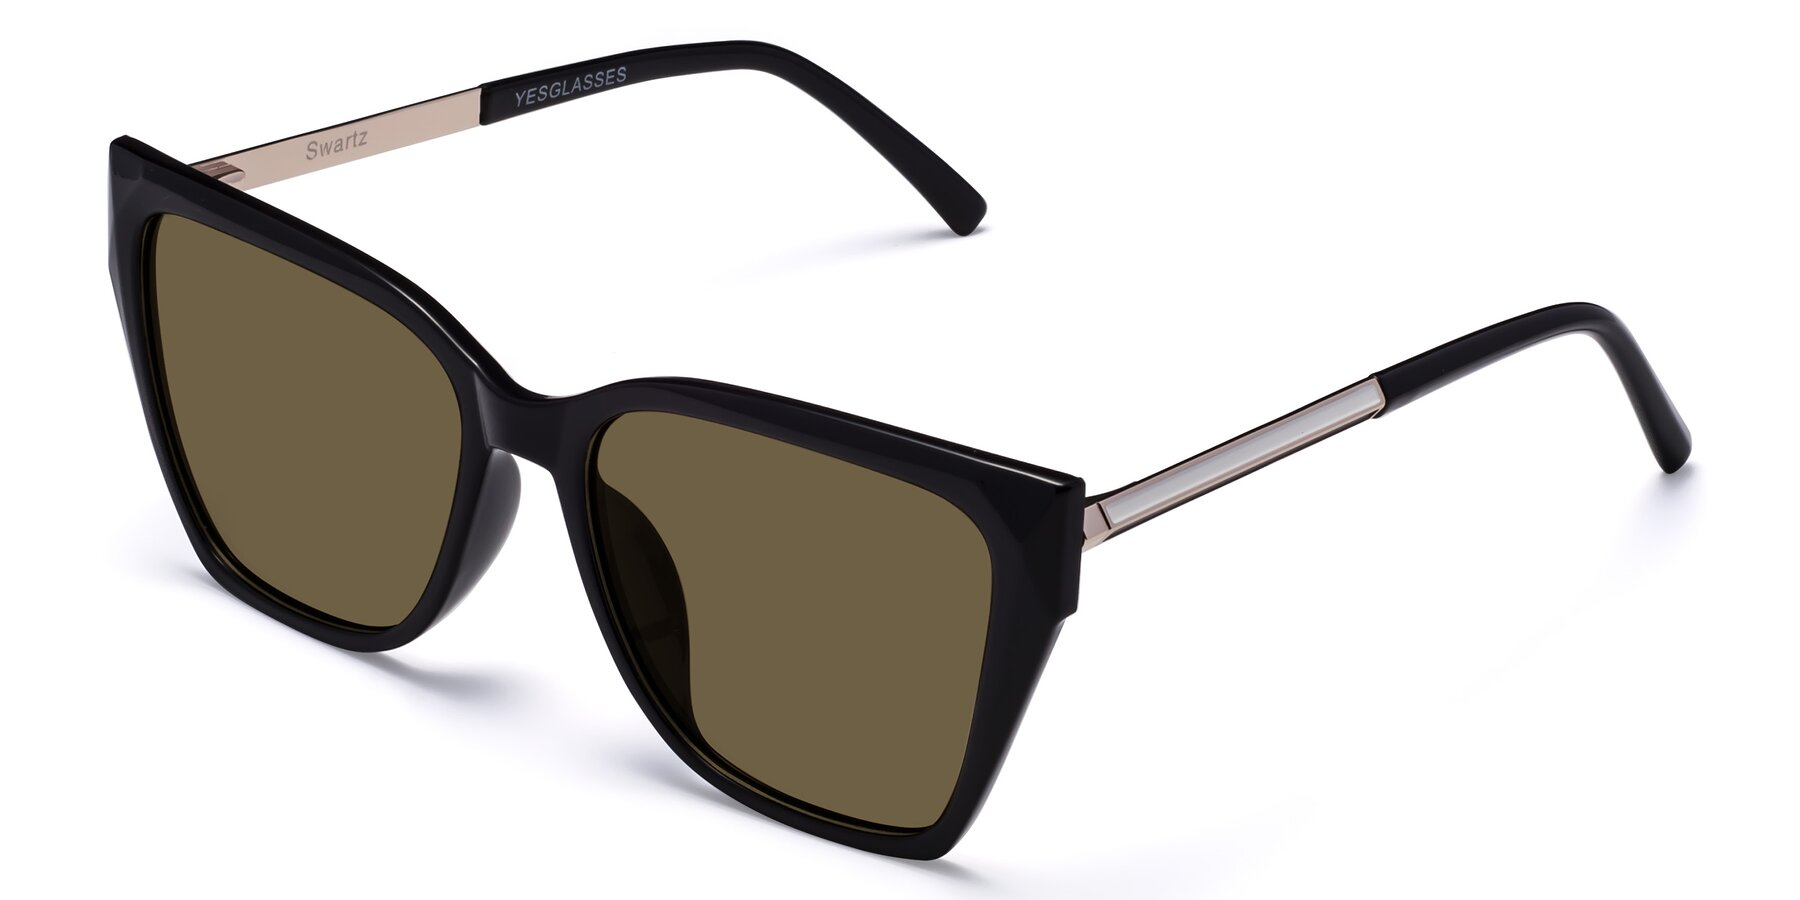 Angle of Swartz in Black with Brown Polarized Lenses